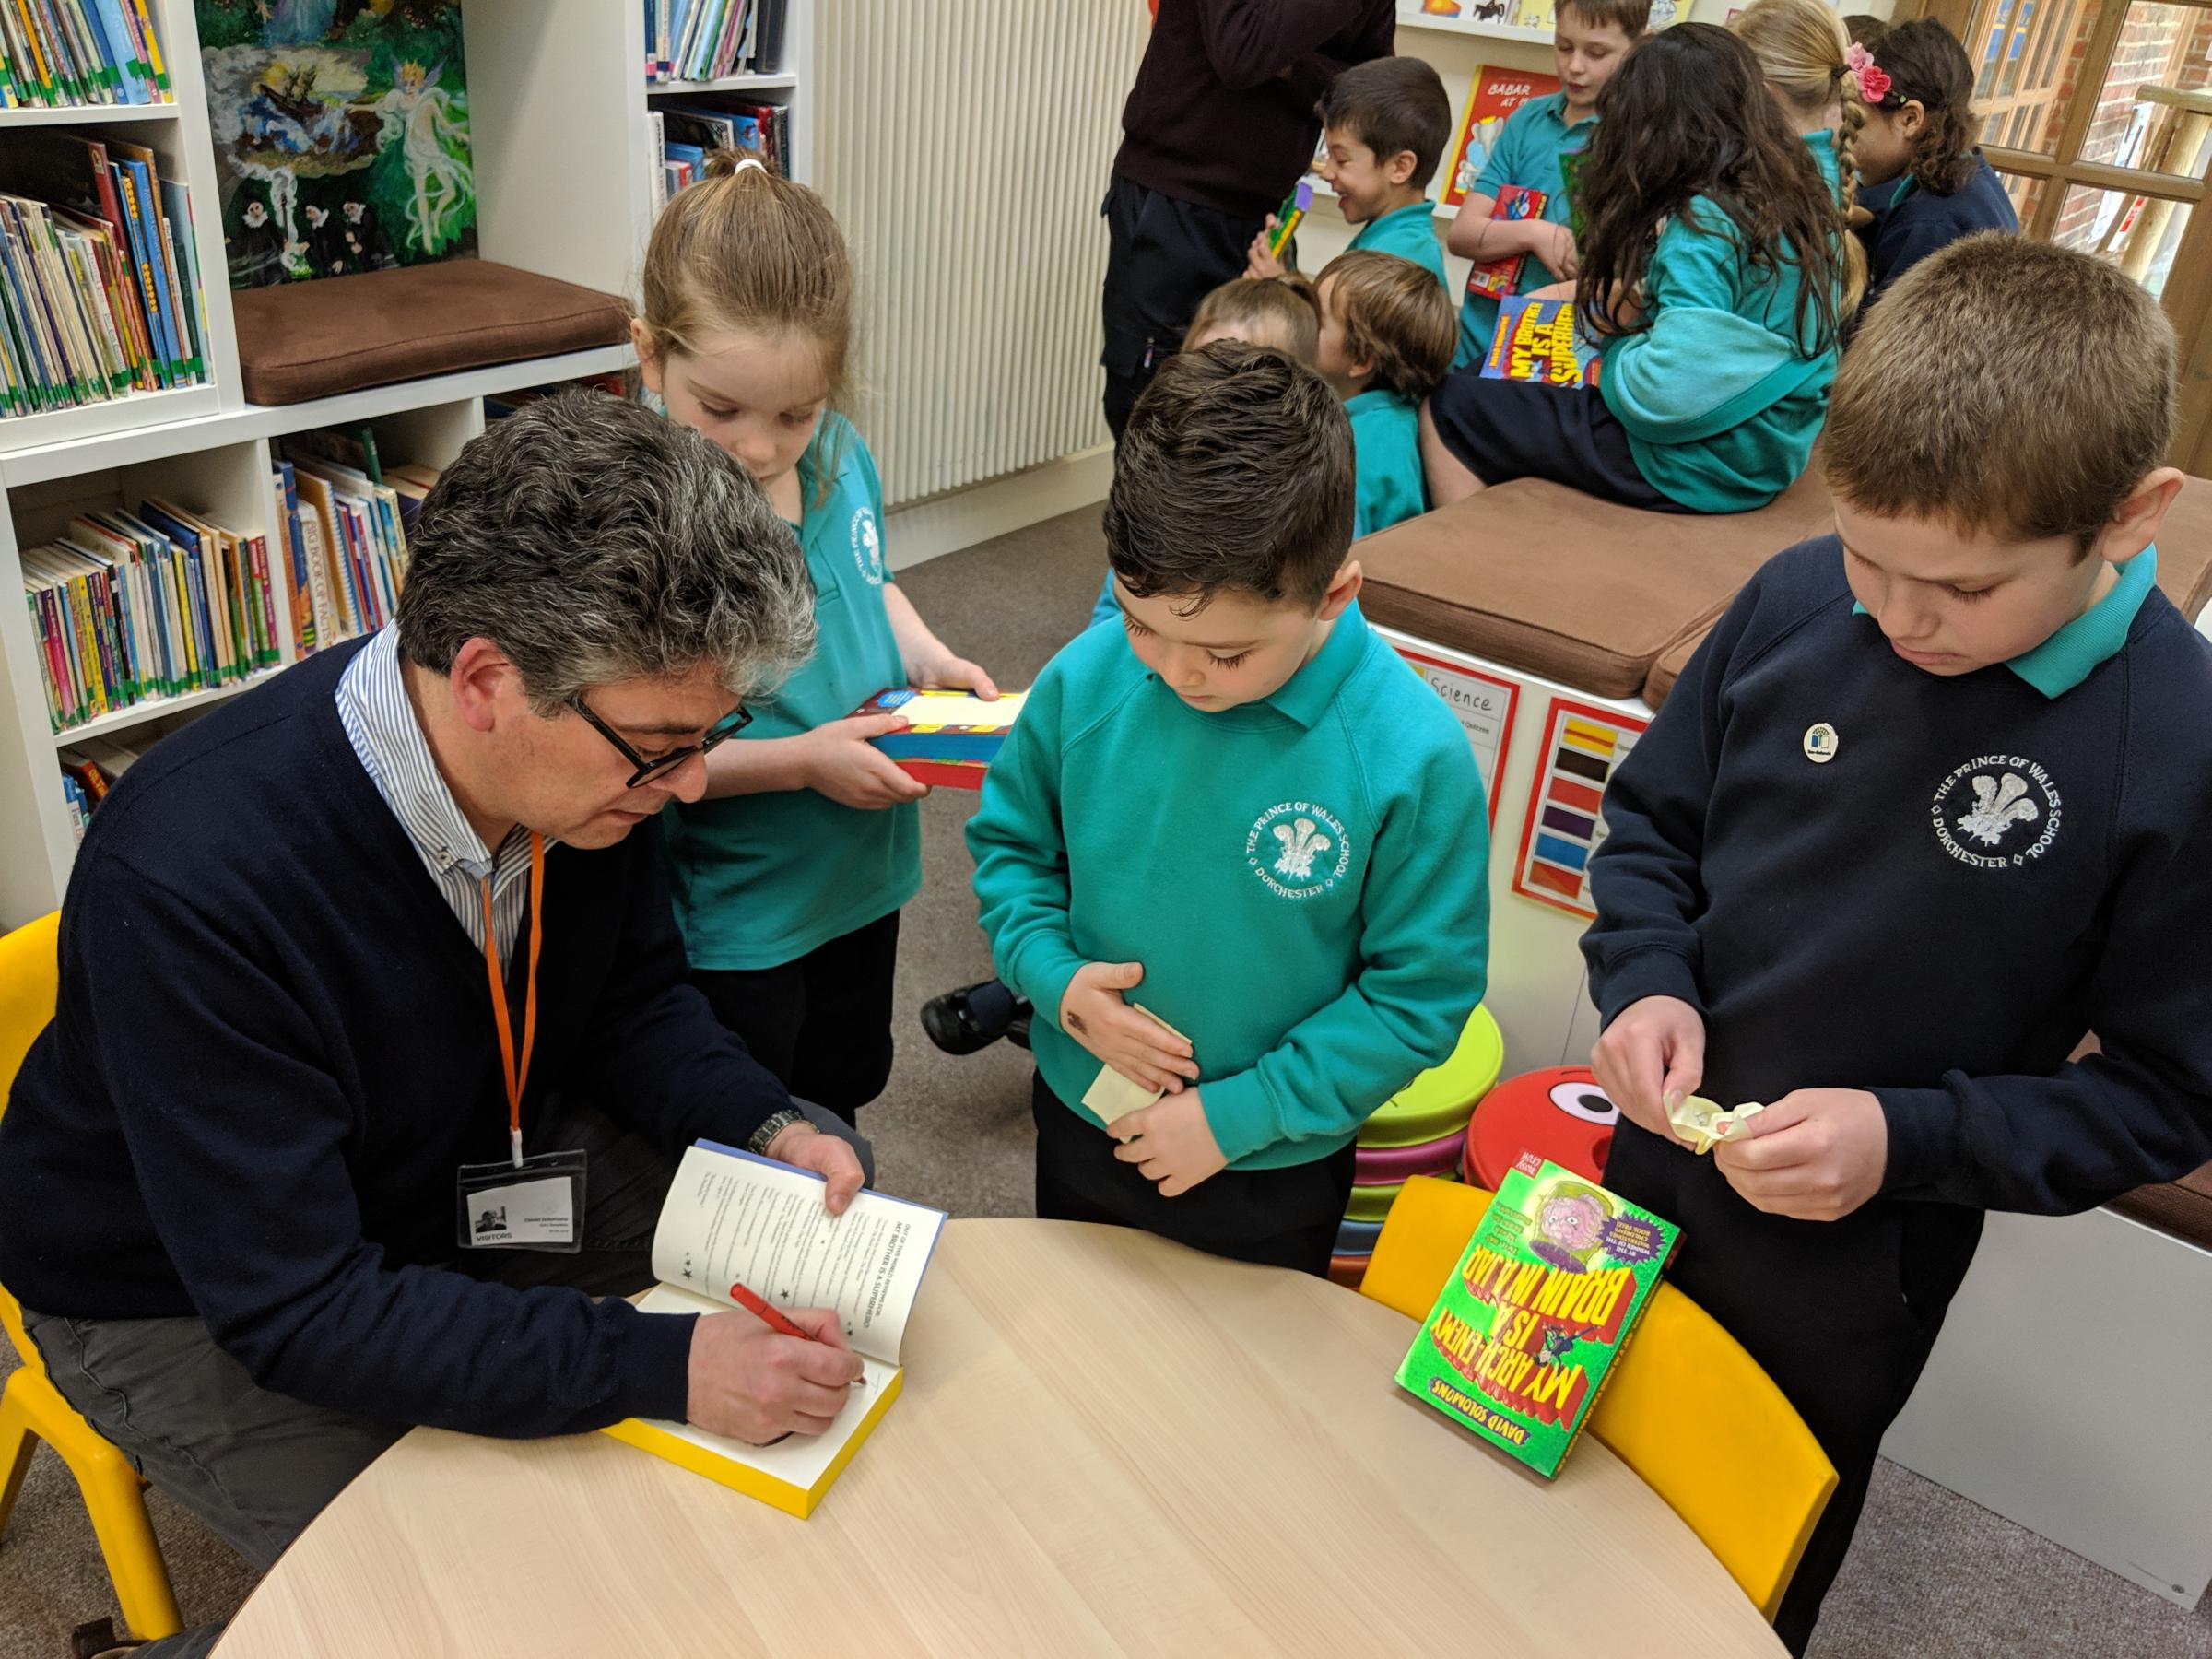 Children's author David Solomons signing copies of his books for the pupils